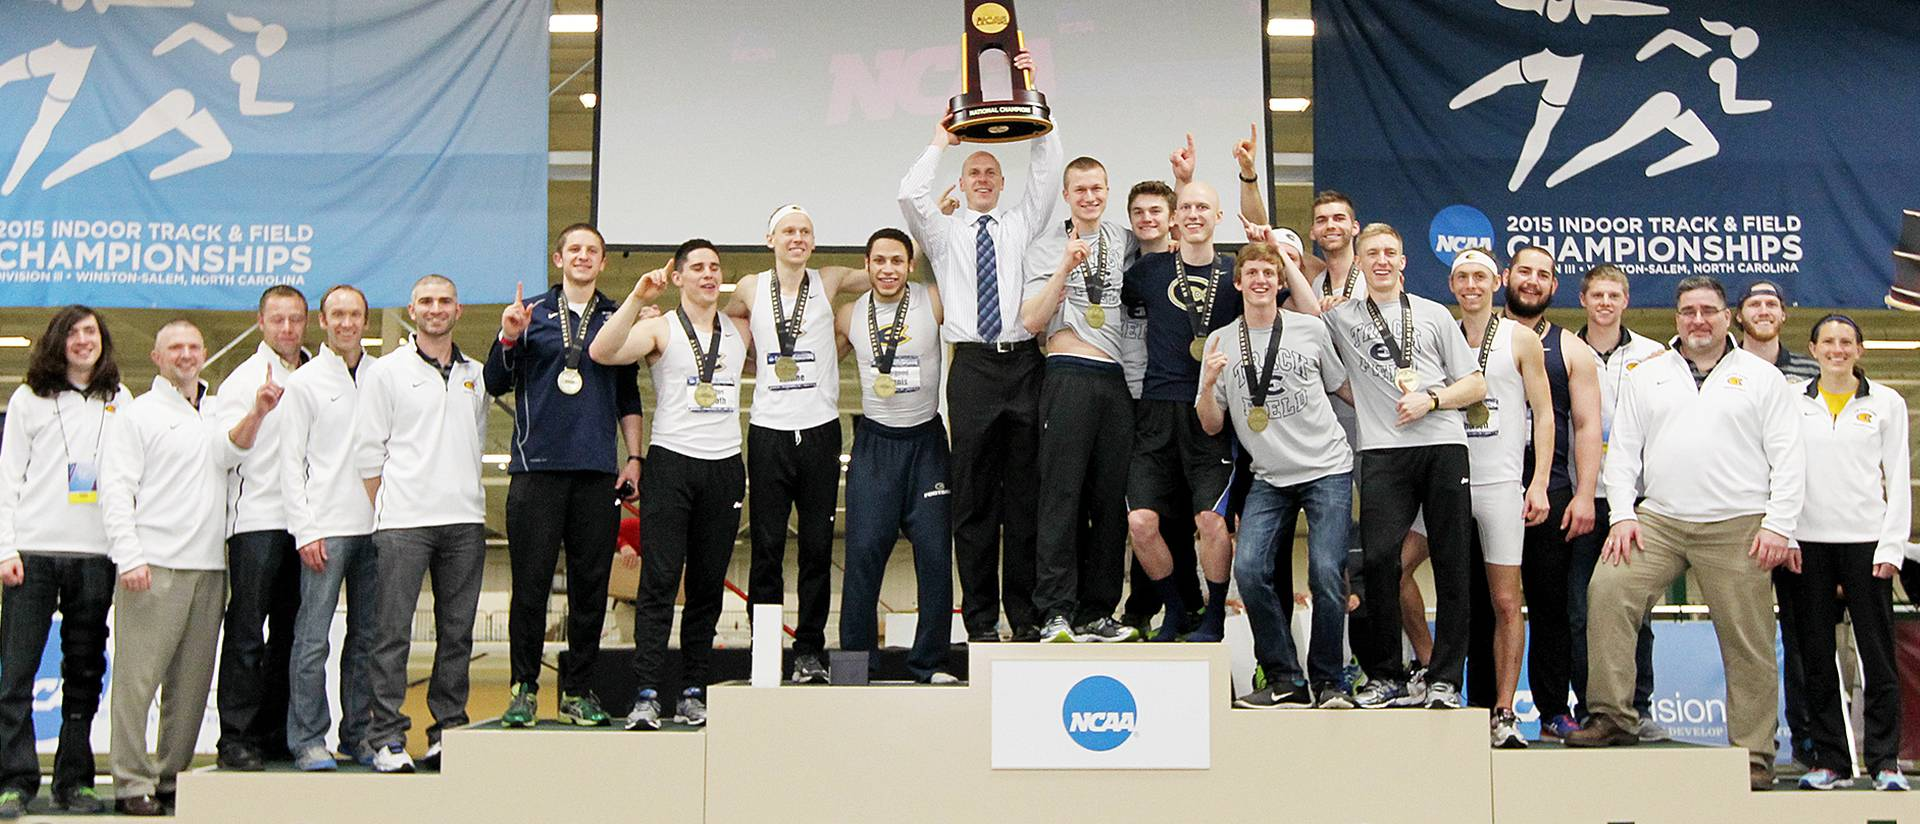 National Champions: Blugold Men's Indoor Track and Field